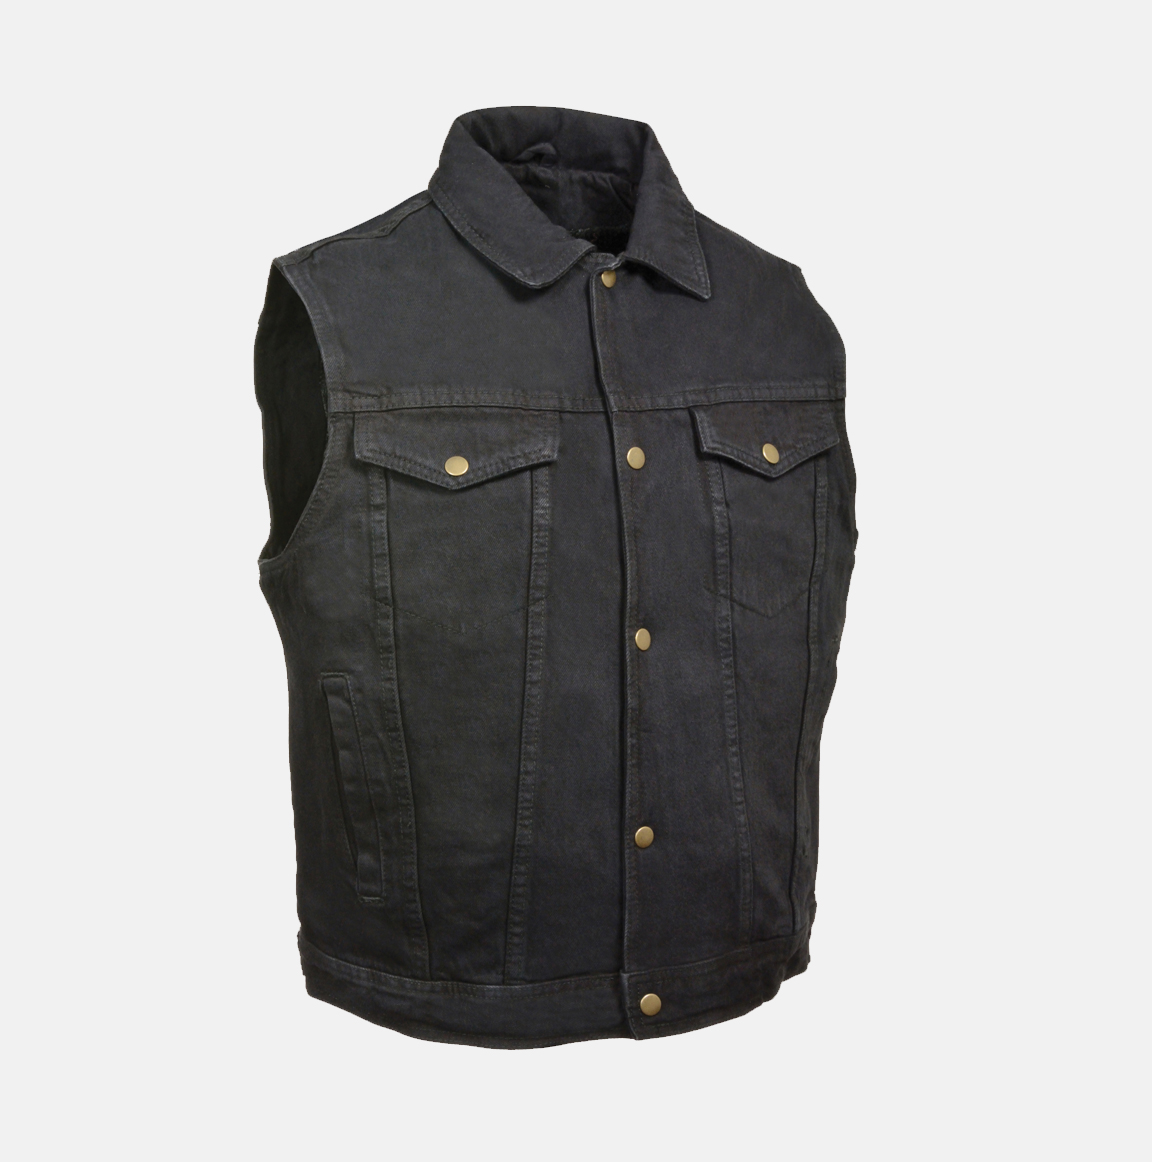 SNAP FRONT BLACK DENIM VEST W/ SHIRT COLLAR - Bikers Gear Online USA